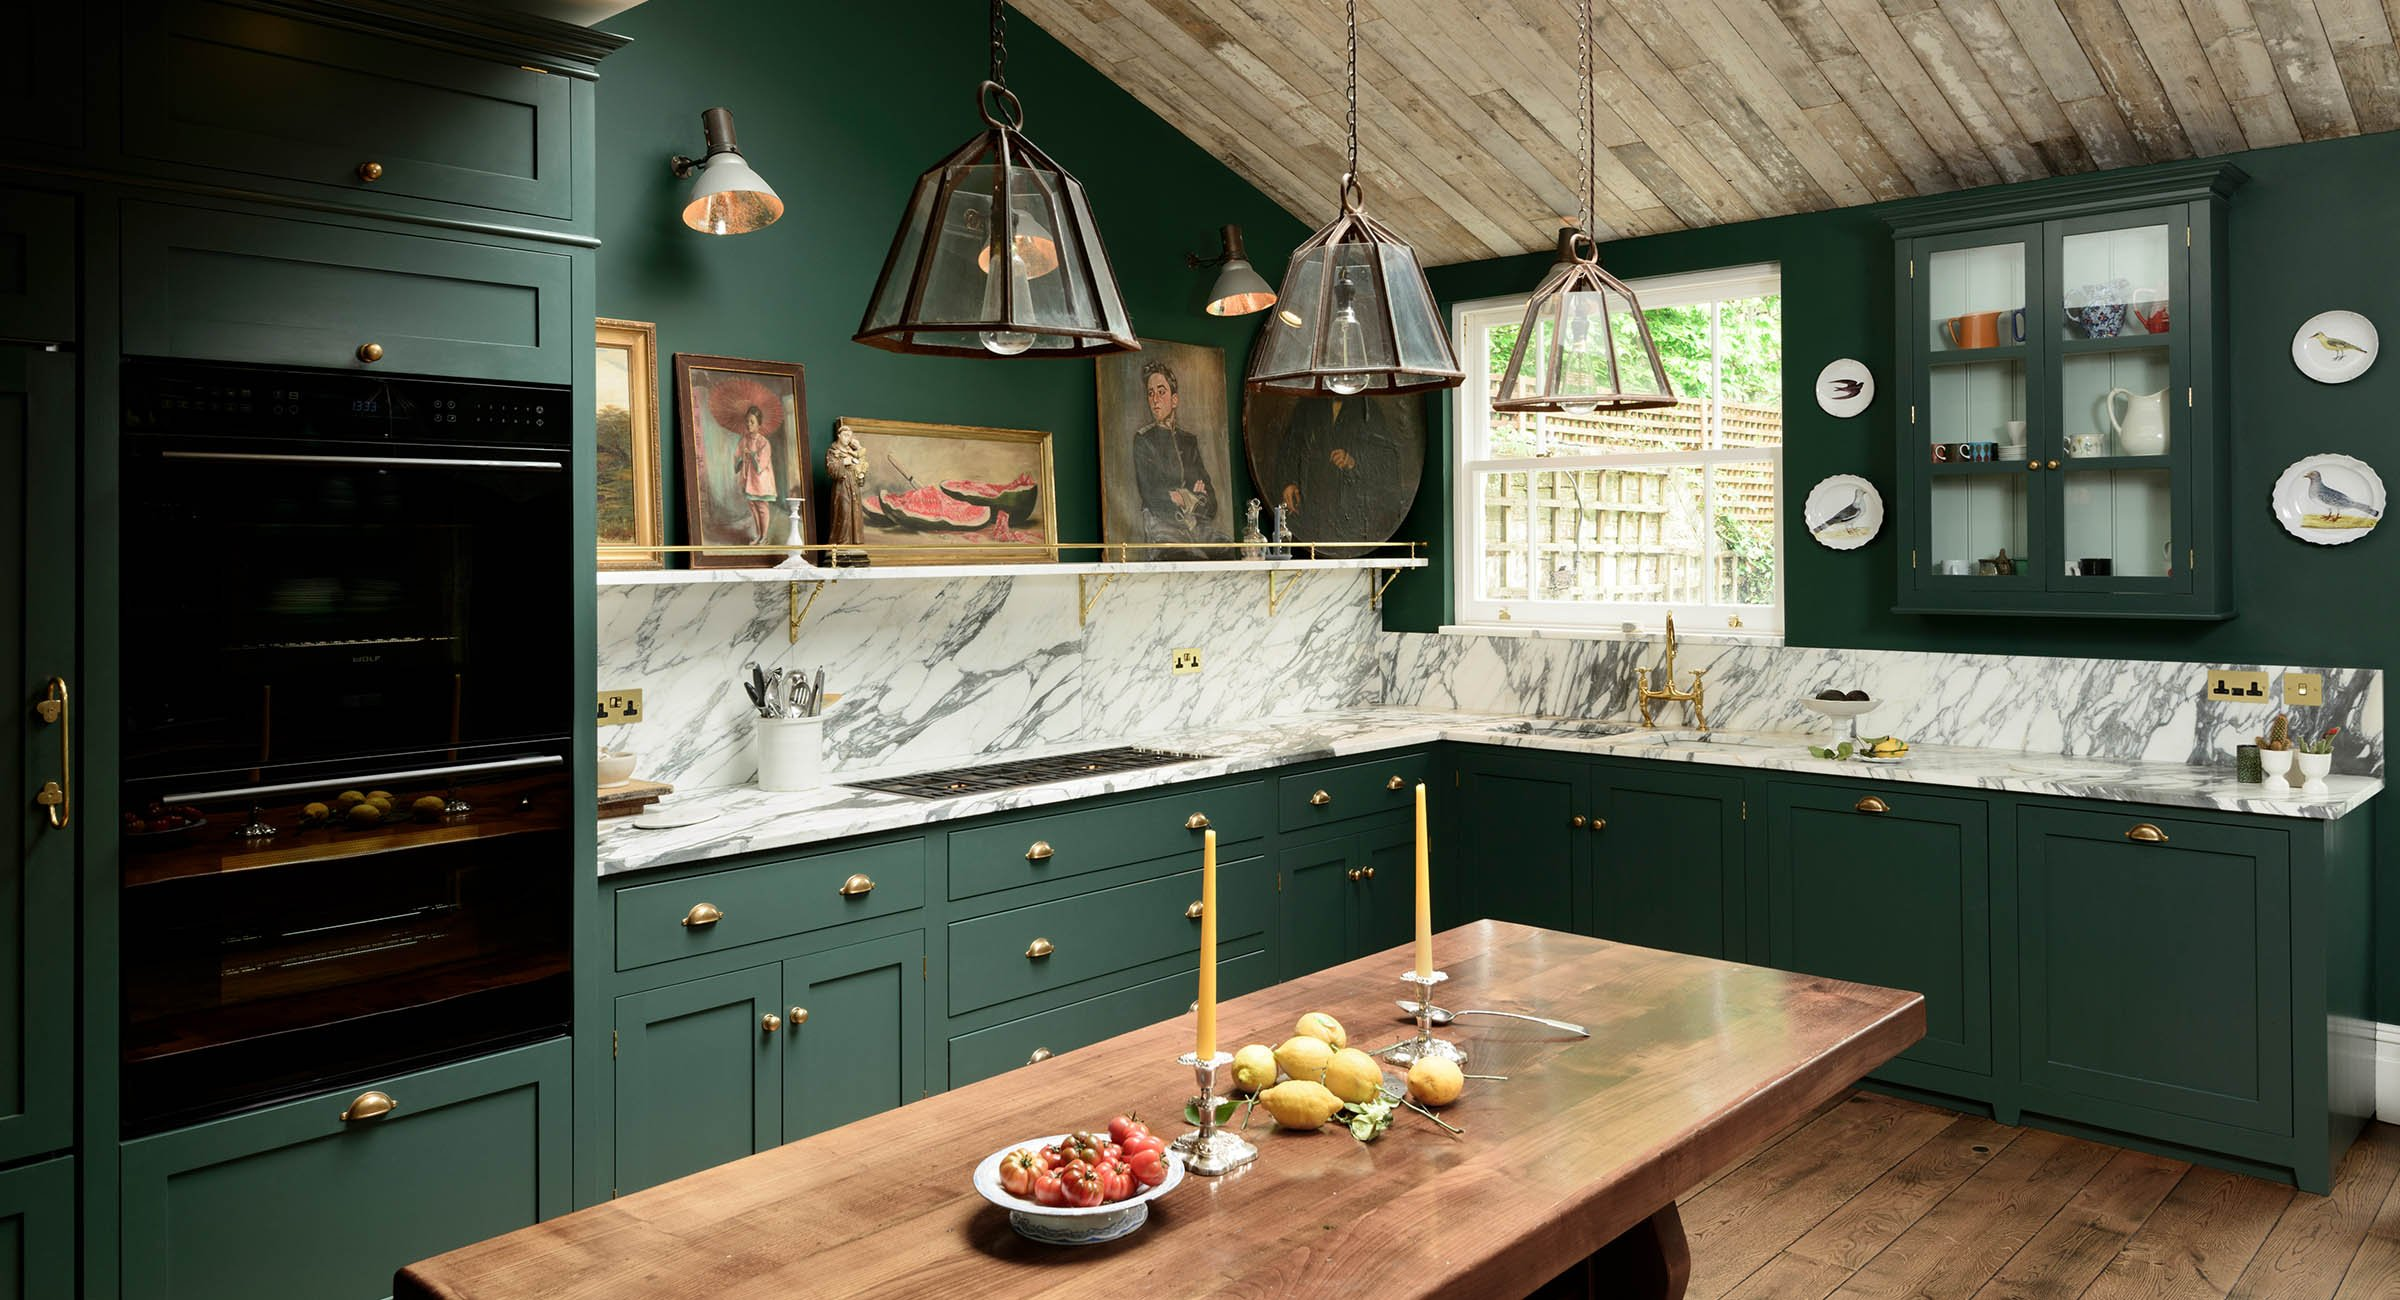 Deep Lush Green Kitchen Cabinet Idea